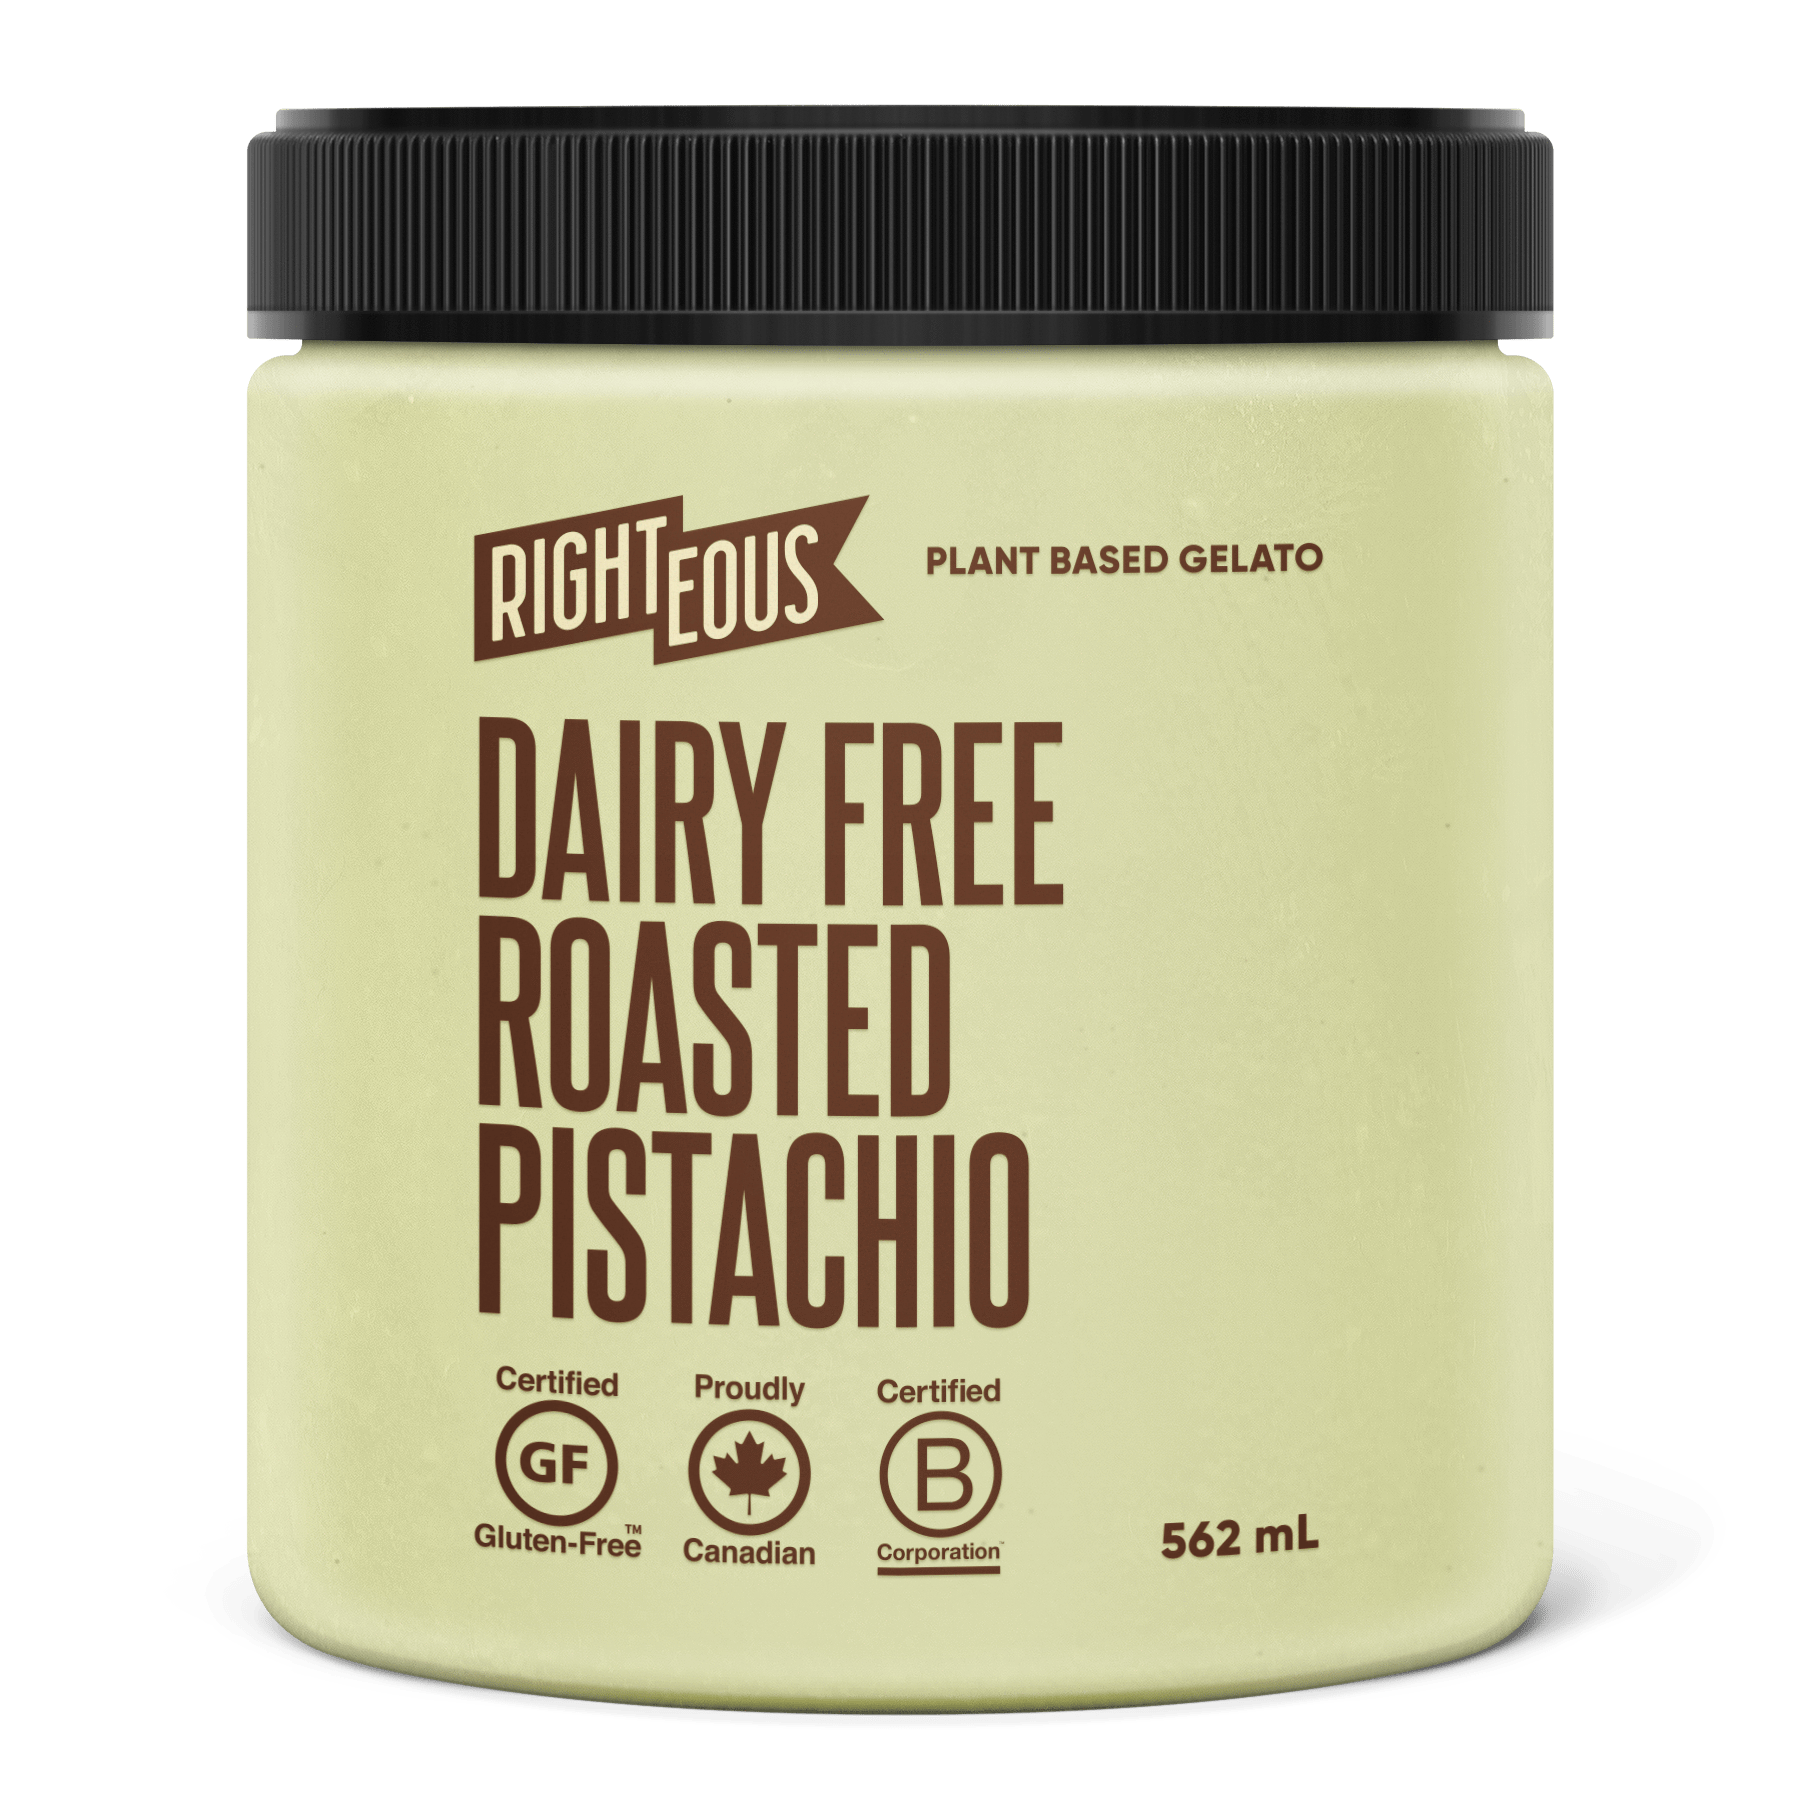 Pint of Righteous Dairy Free Roasted Pistachio gelato